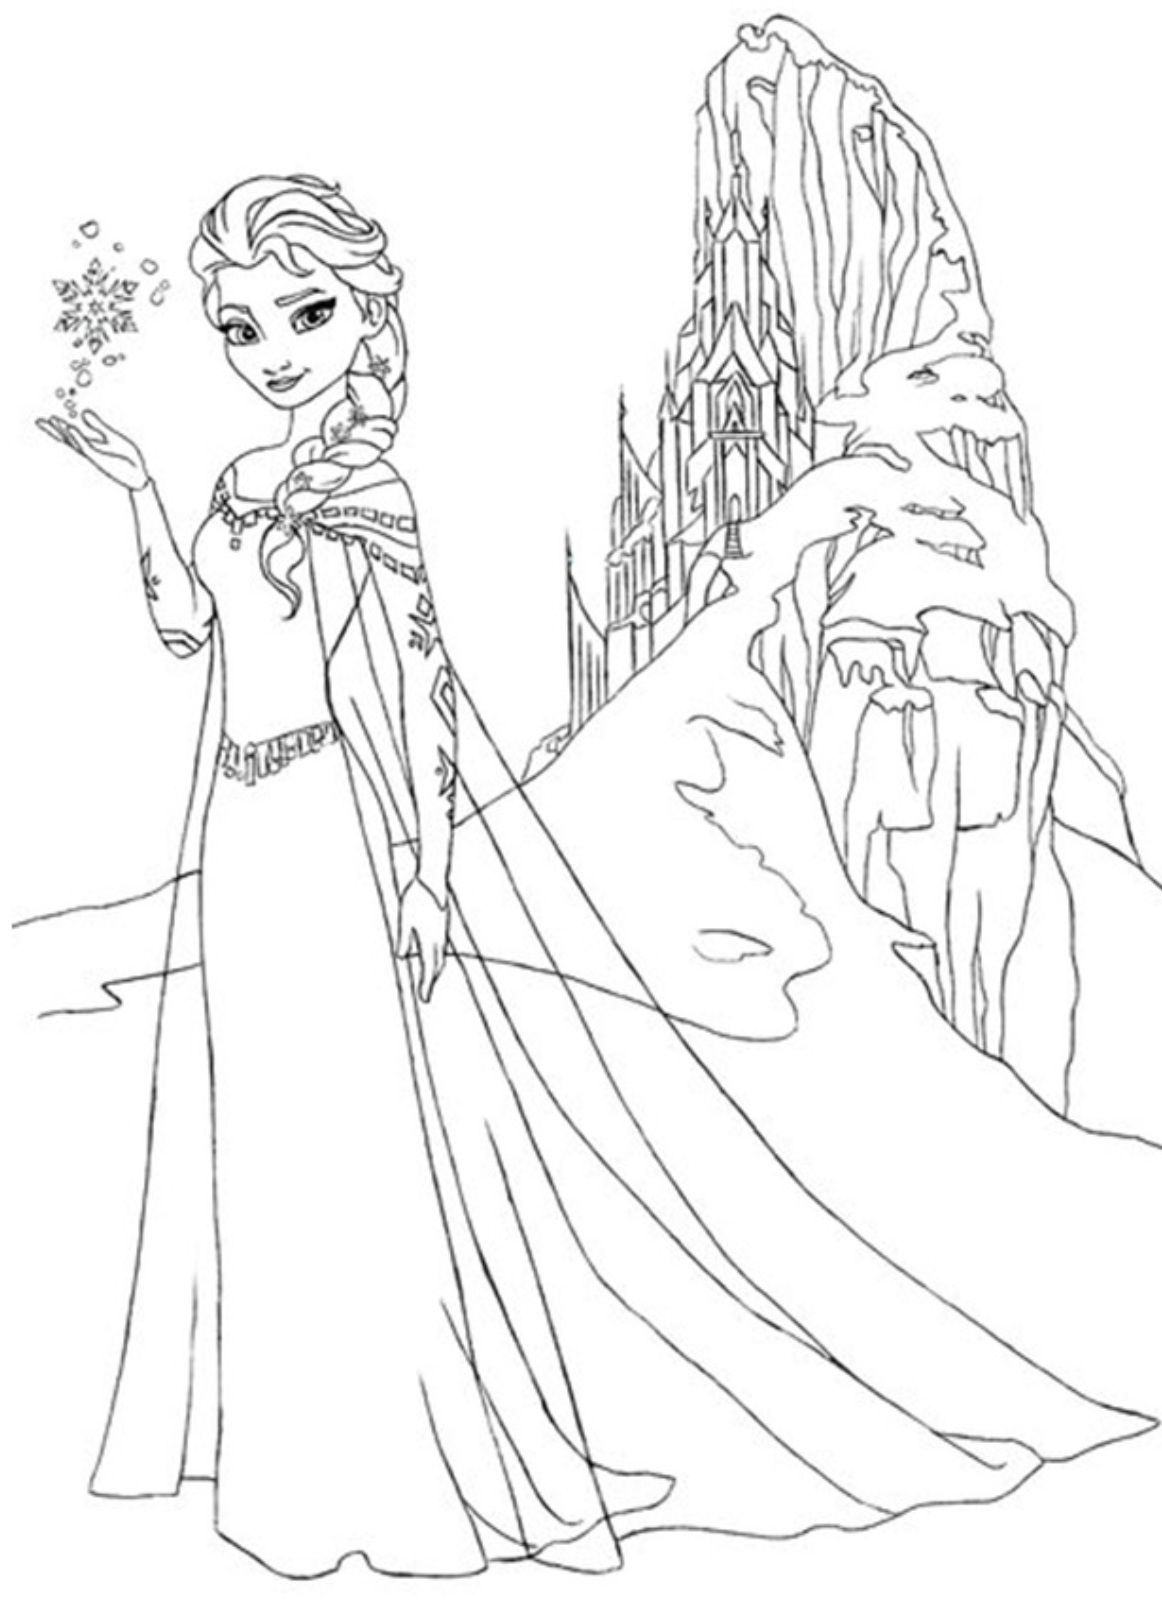 Download And Print Frozen Coloring Page Kifest K Coloring